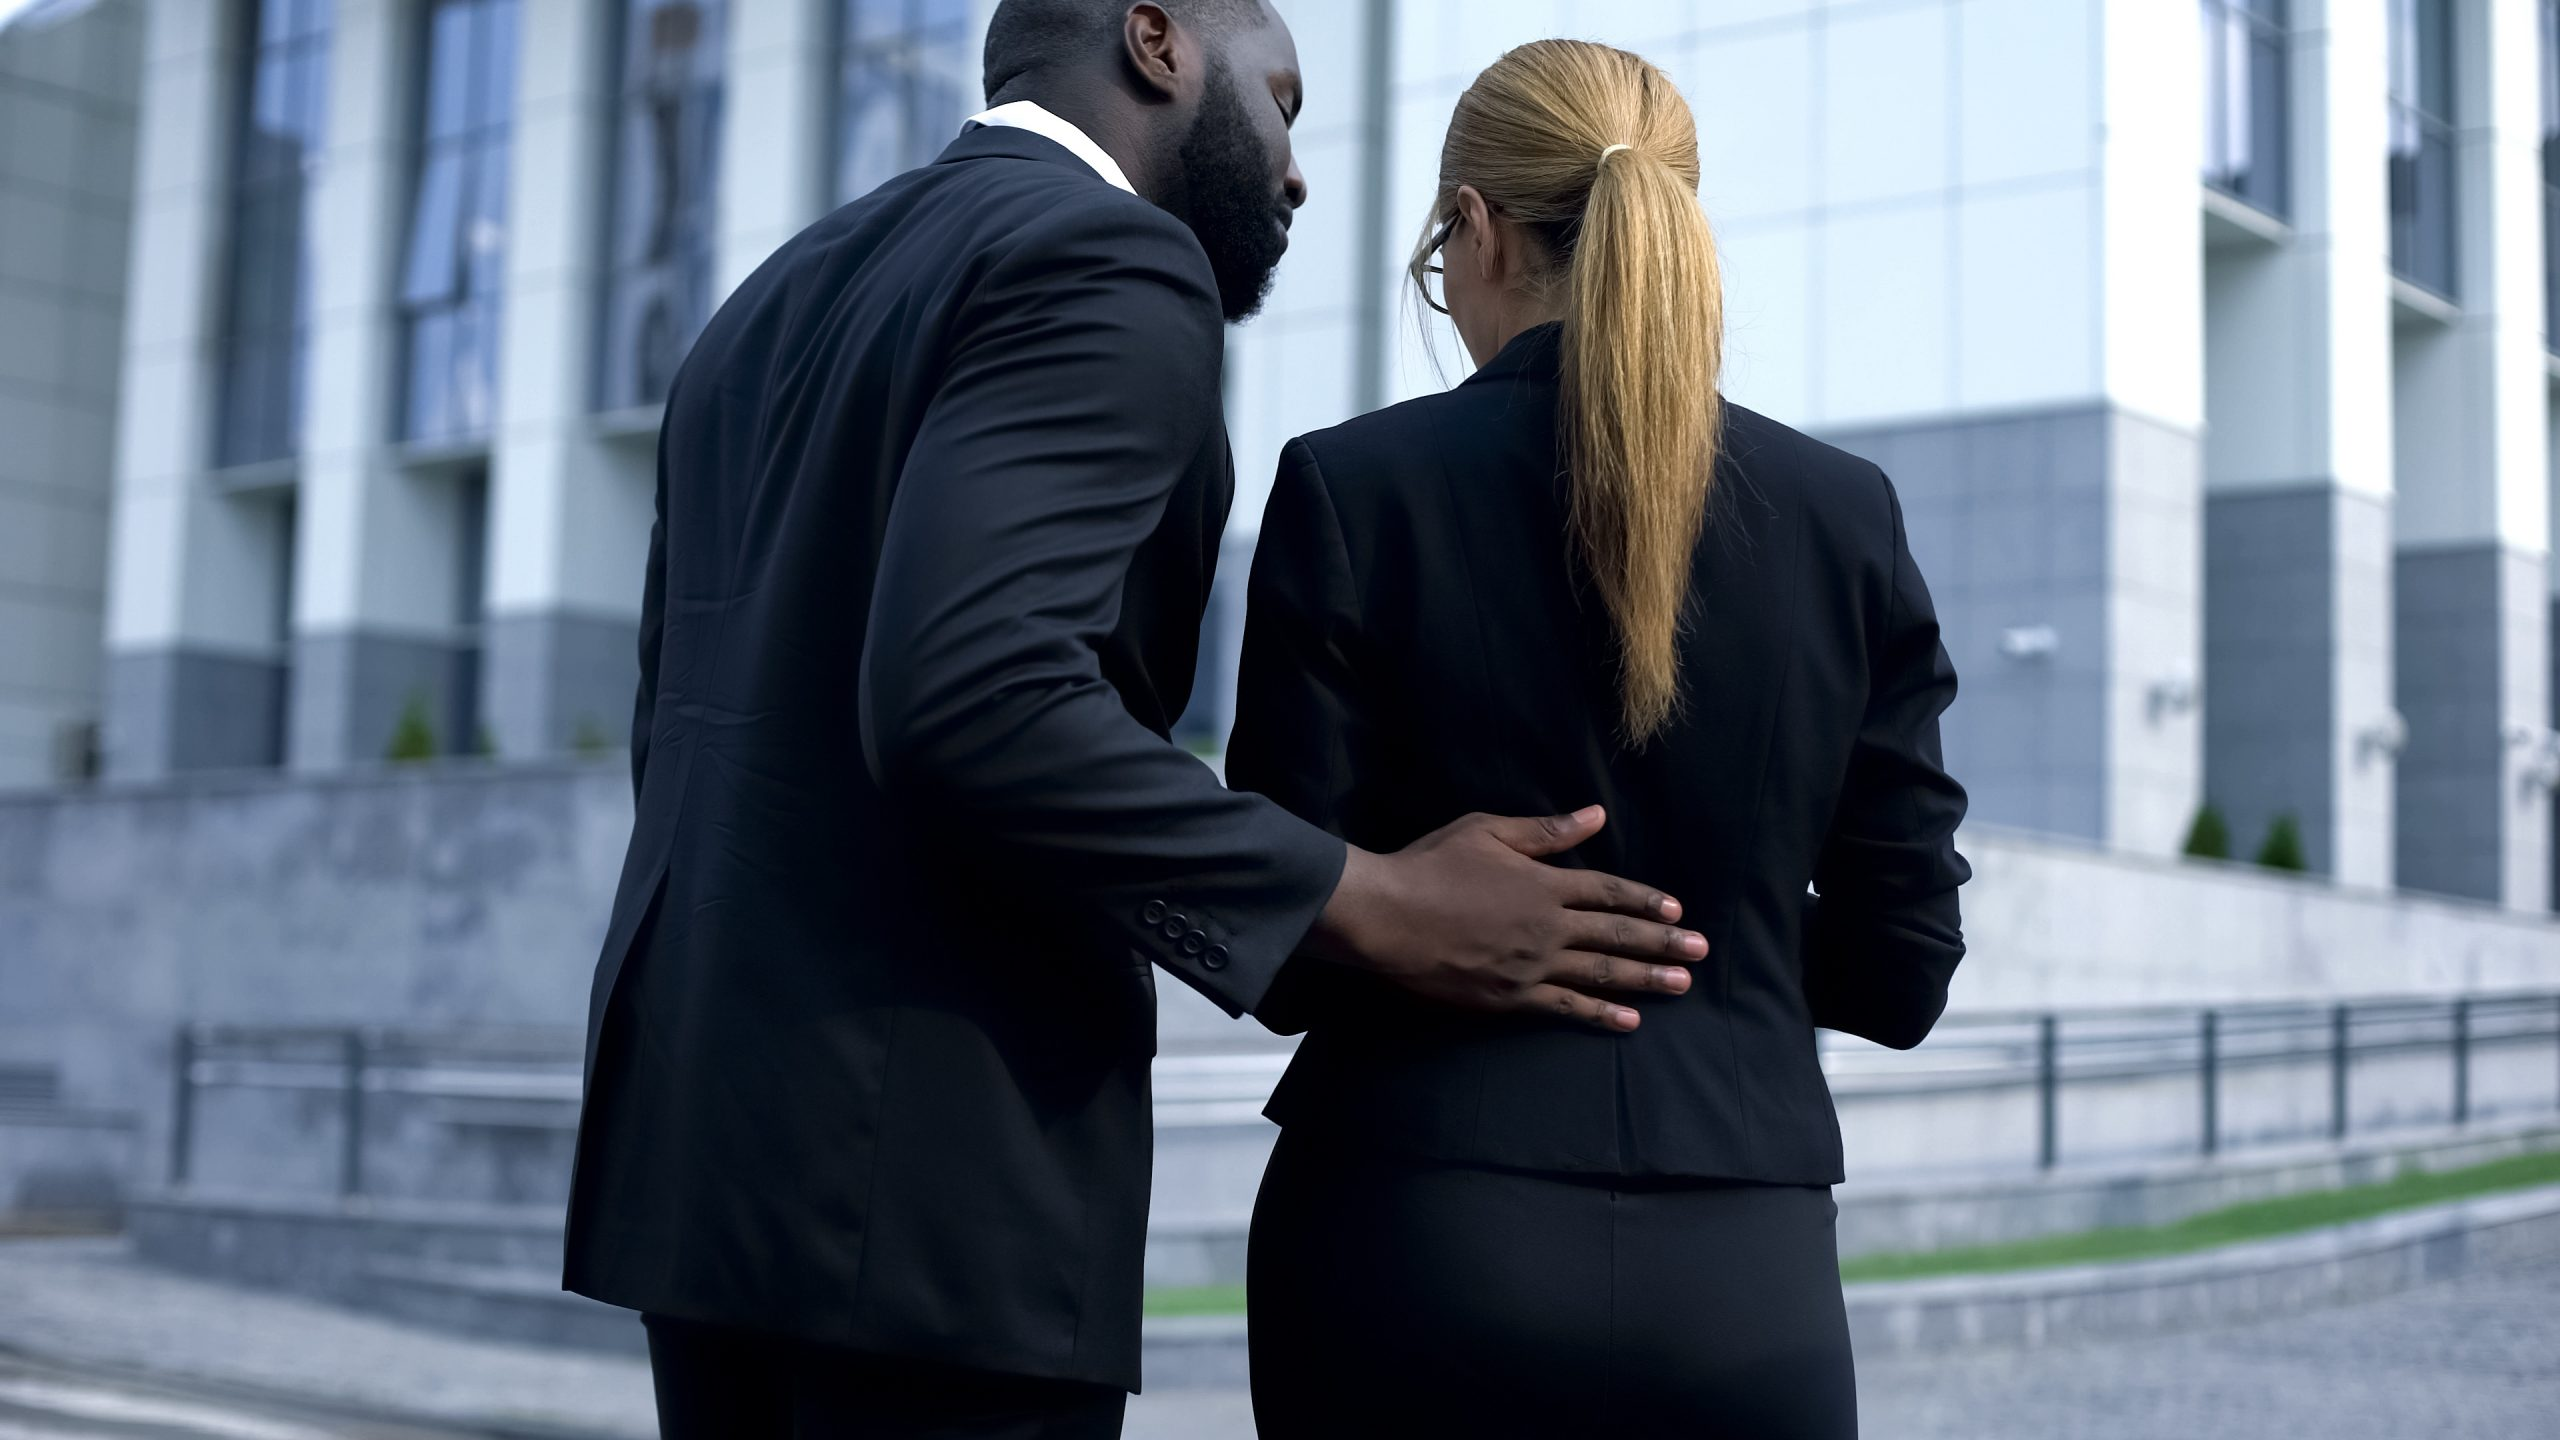 National news headlines, particularly in 2017 when the #MeToo movement was popularizing, seemed to share more and more stories of sexual misconduct in the workplace.